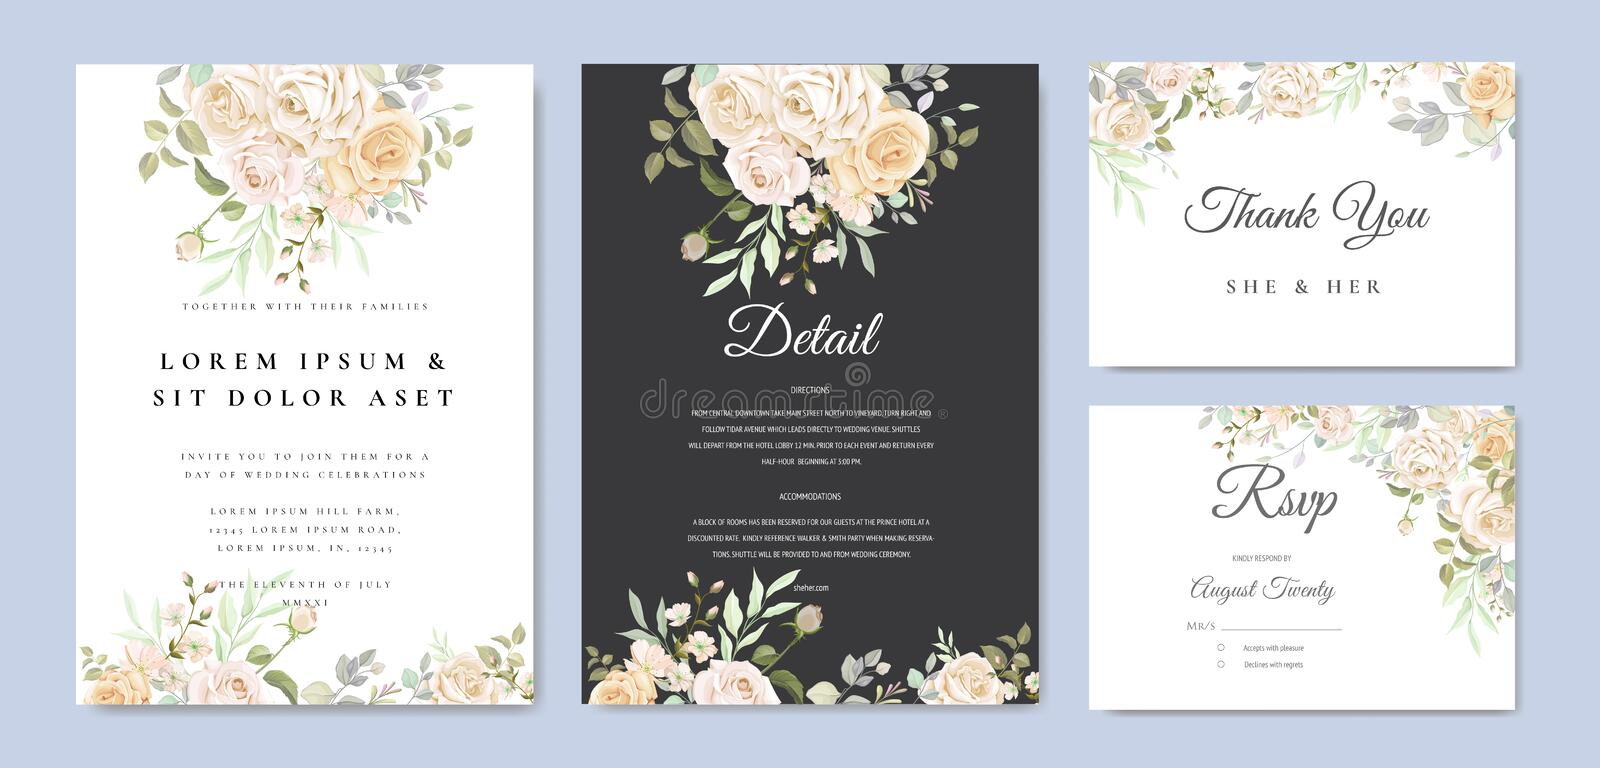 Beautiful wedding invitation card with watercolor floral royalty free stock images